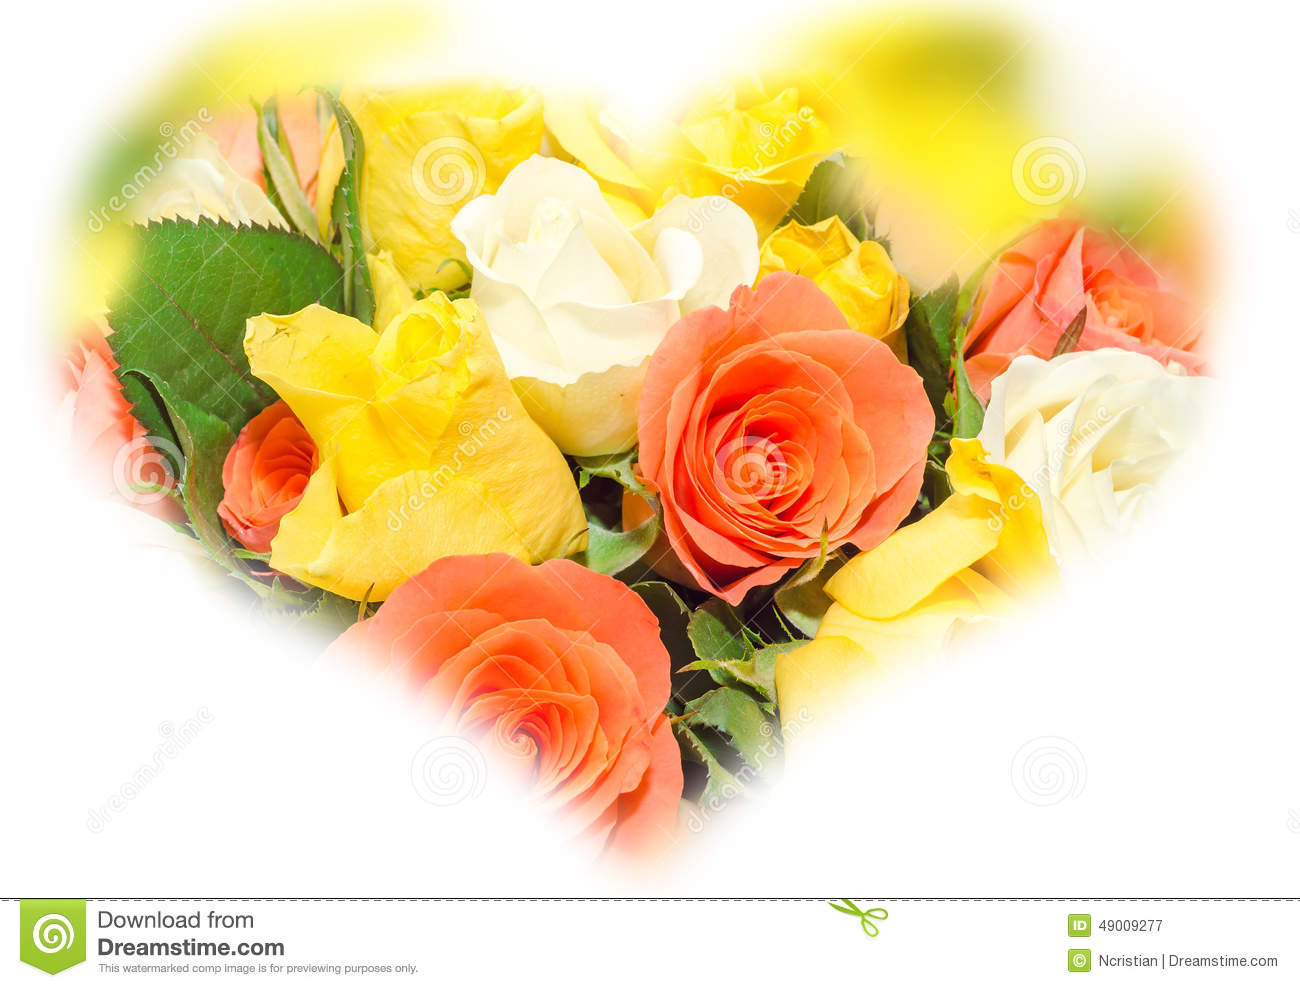 Valentines Day Flowers With White Orange Red And Yellow